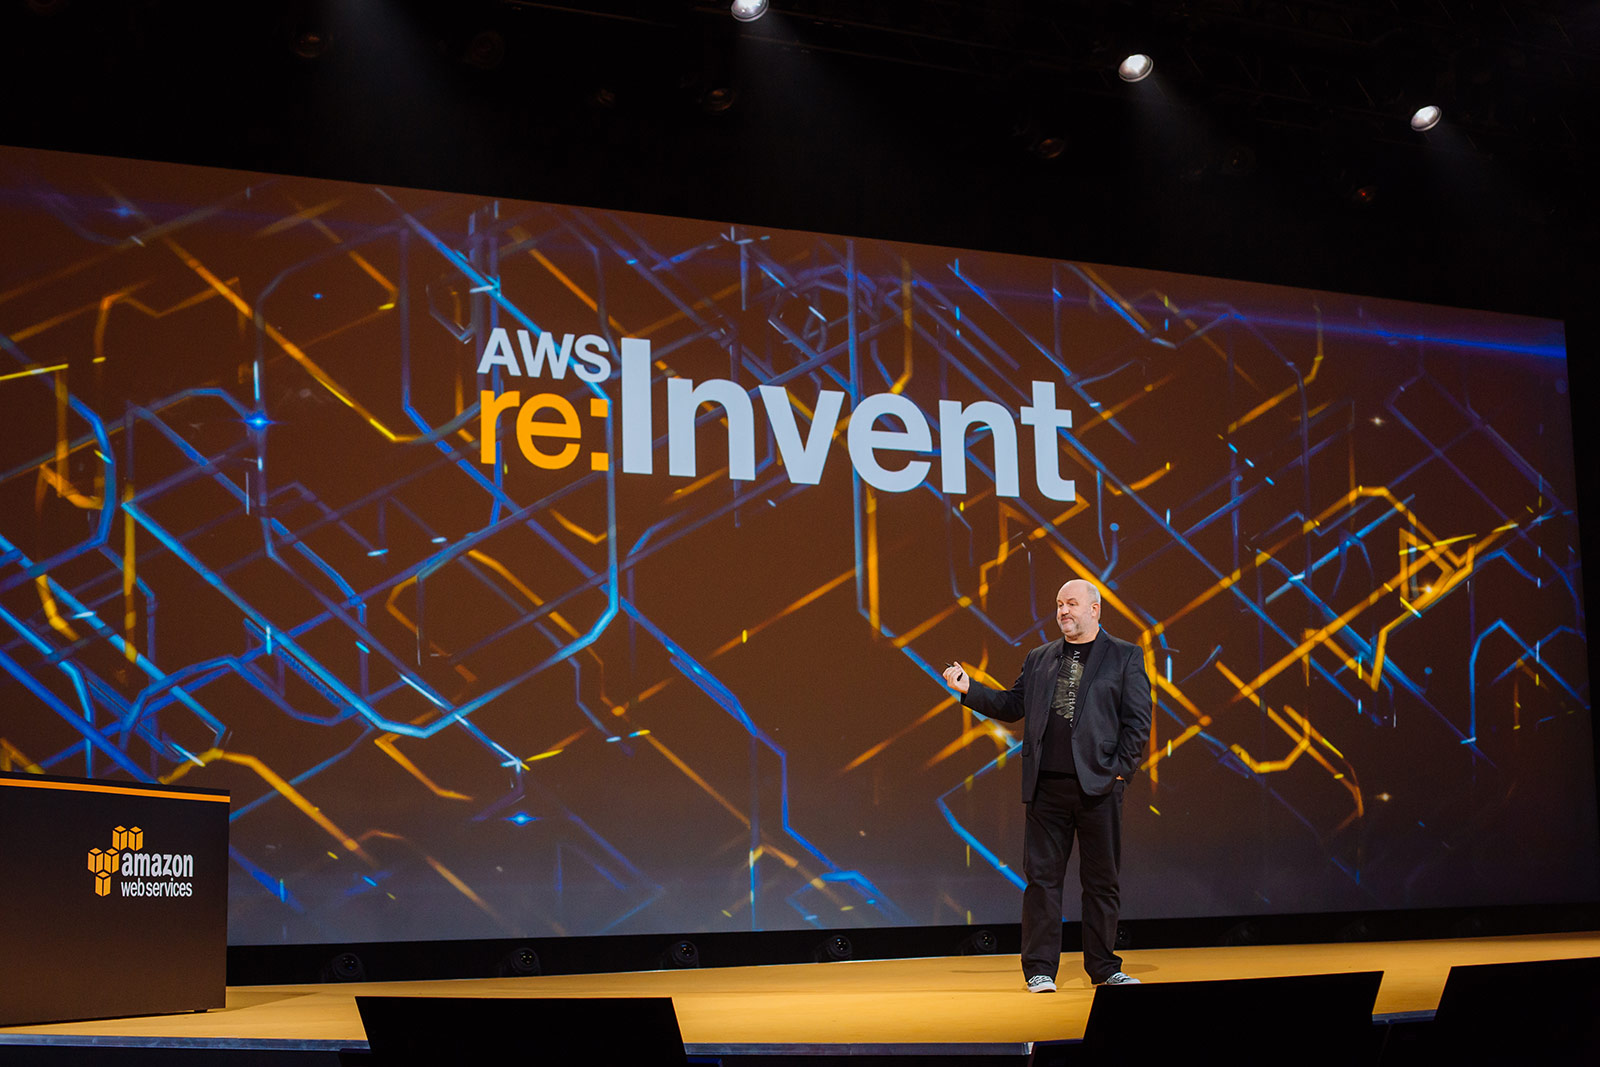 AWS re:Invent Day 2 saw service offerings in the field of big data and IoT